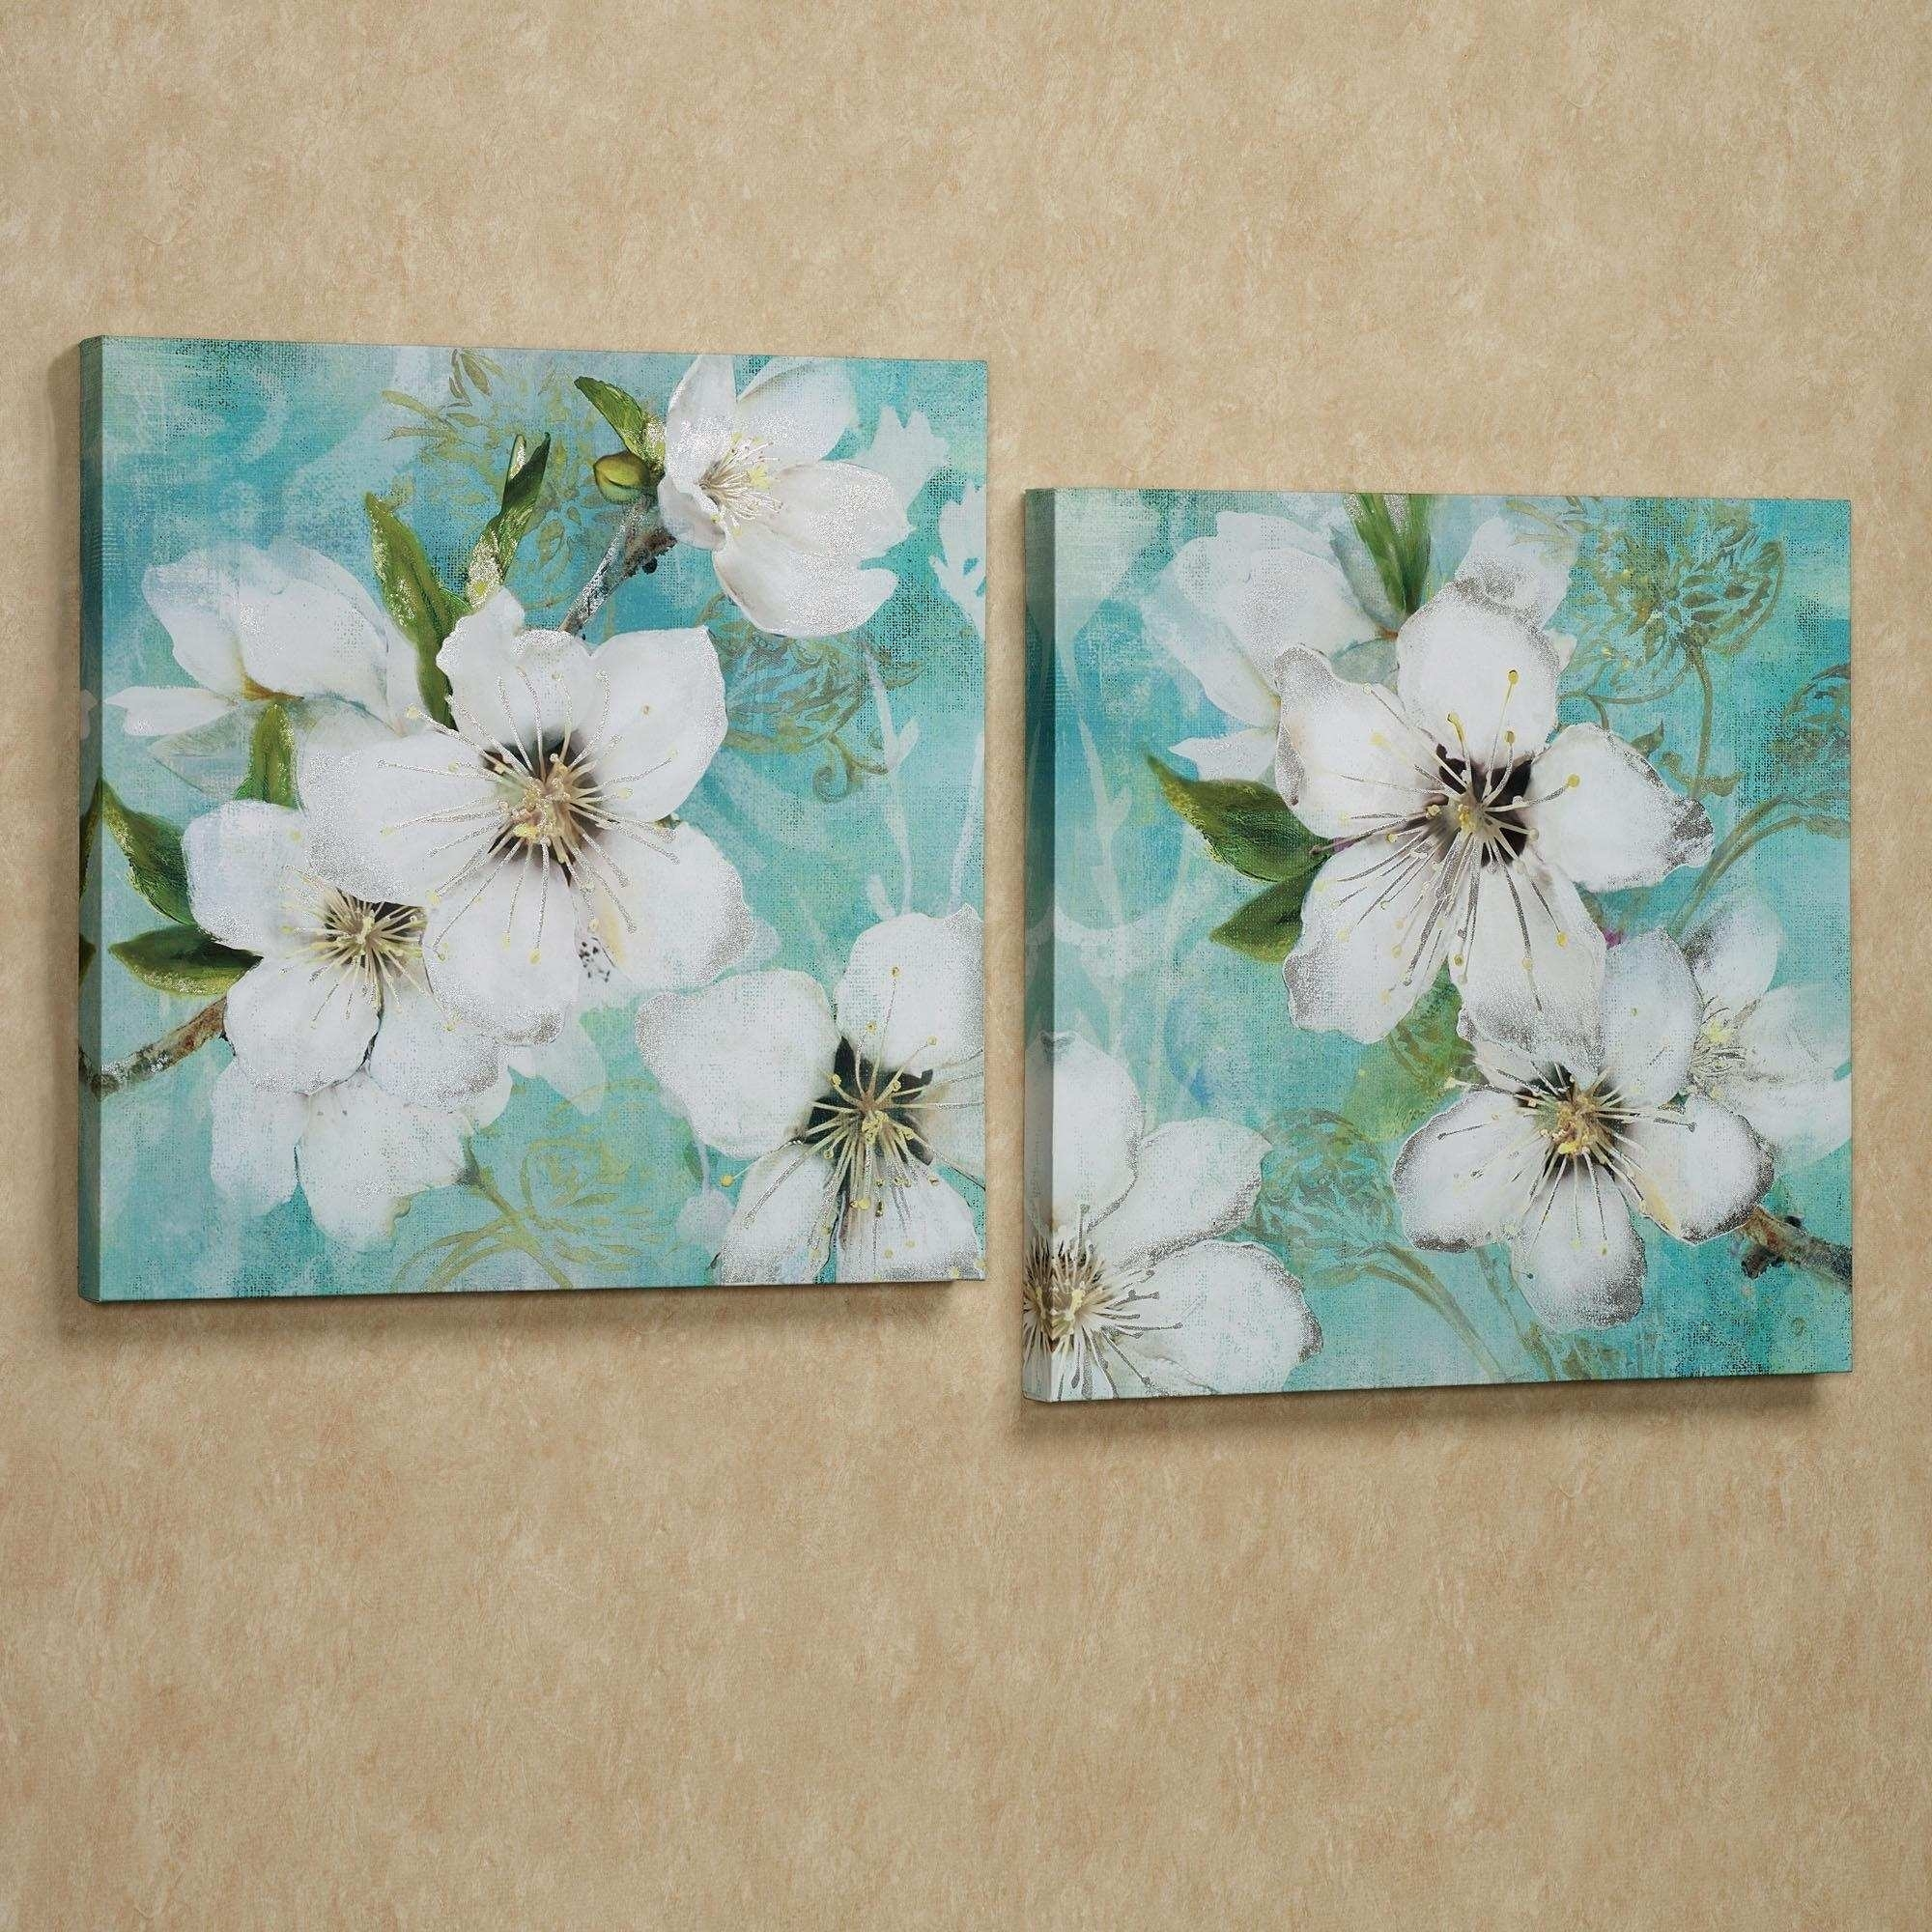 Floral Canvas Wall Art Fresh 20 Ideas Of Floral Wall Art Canvas Throughout Most Up To Date Floral Canvas Wall Art (View 8 of 20)